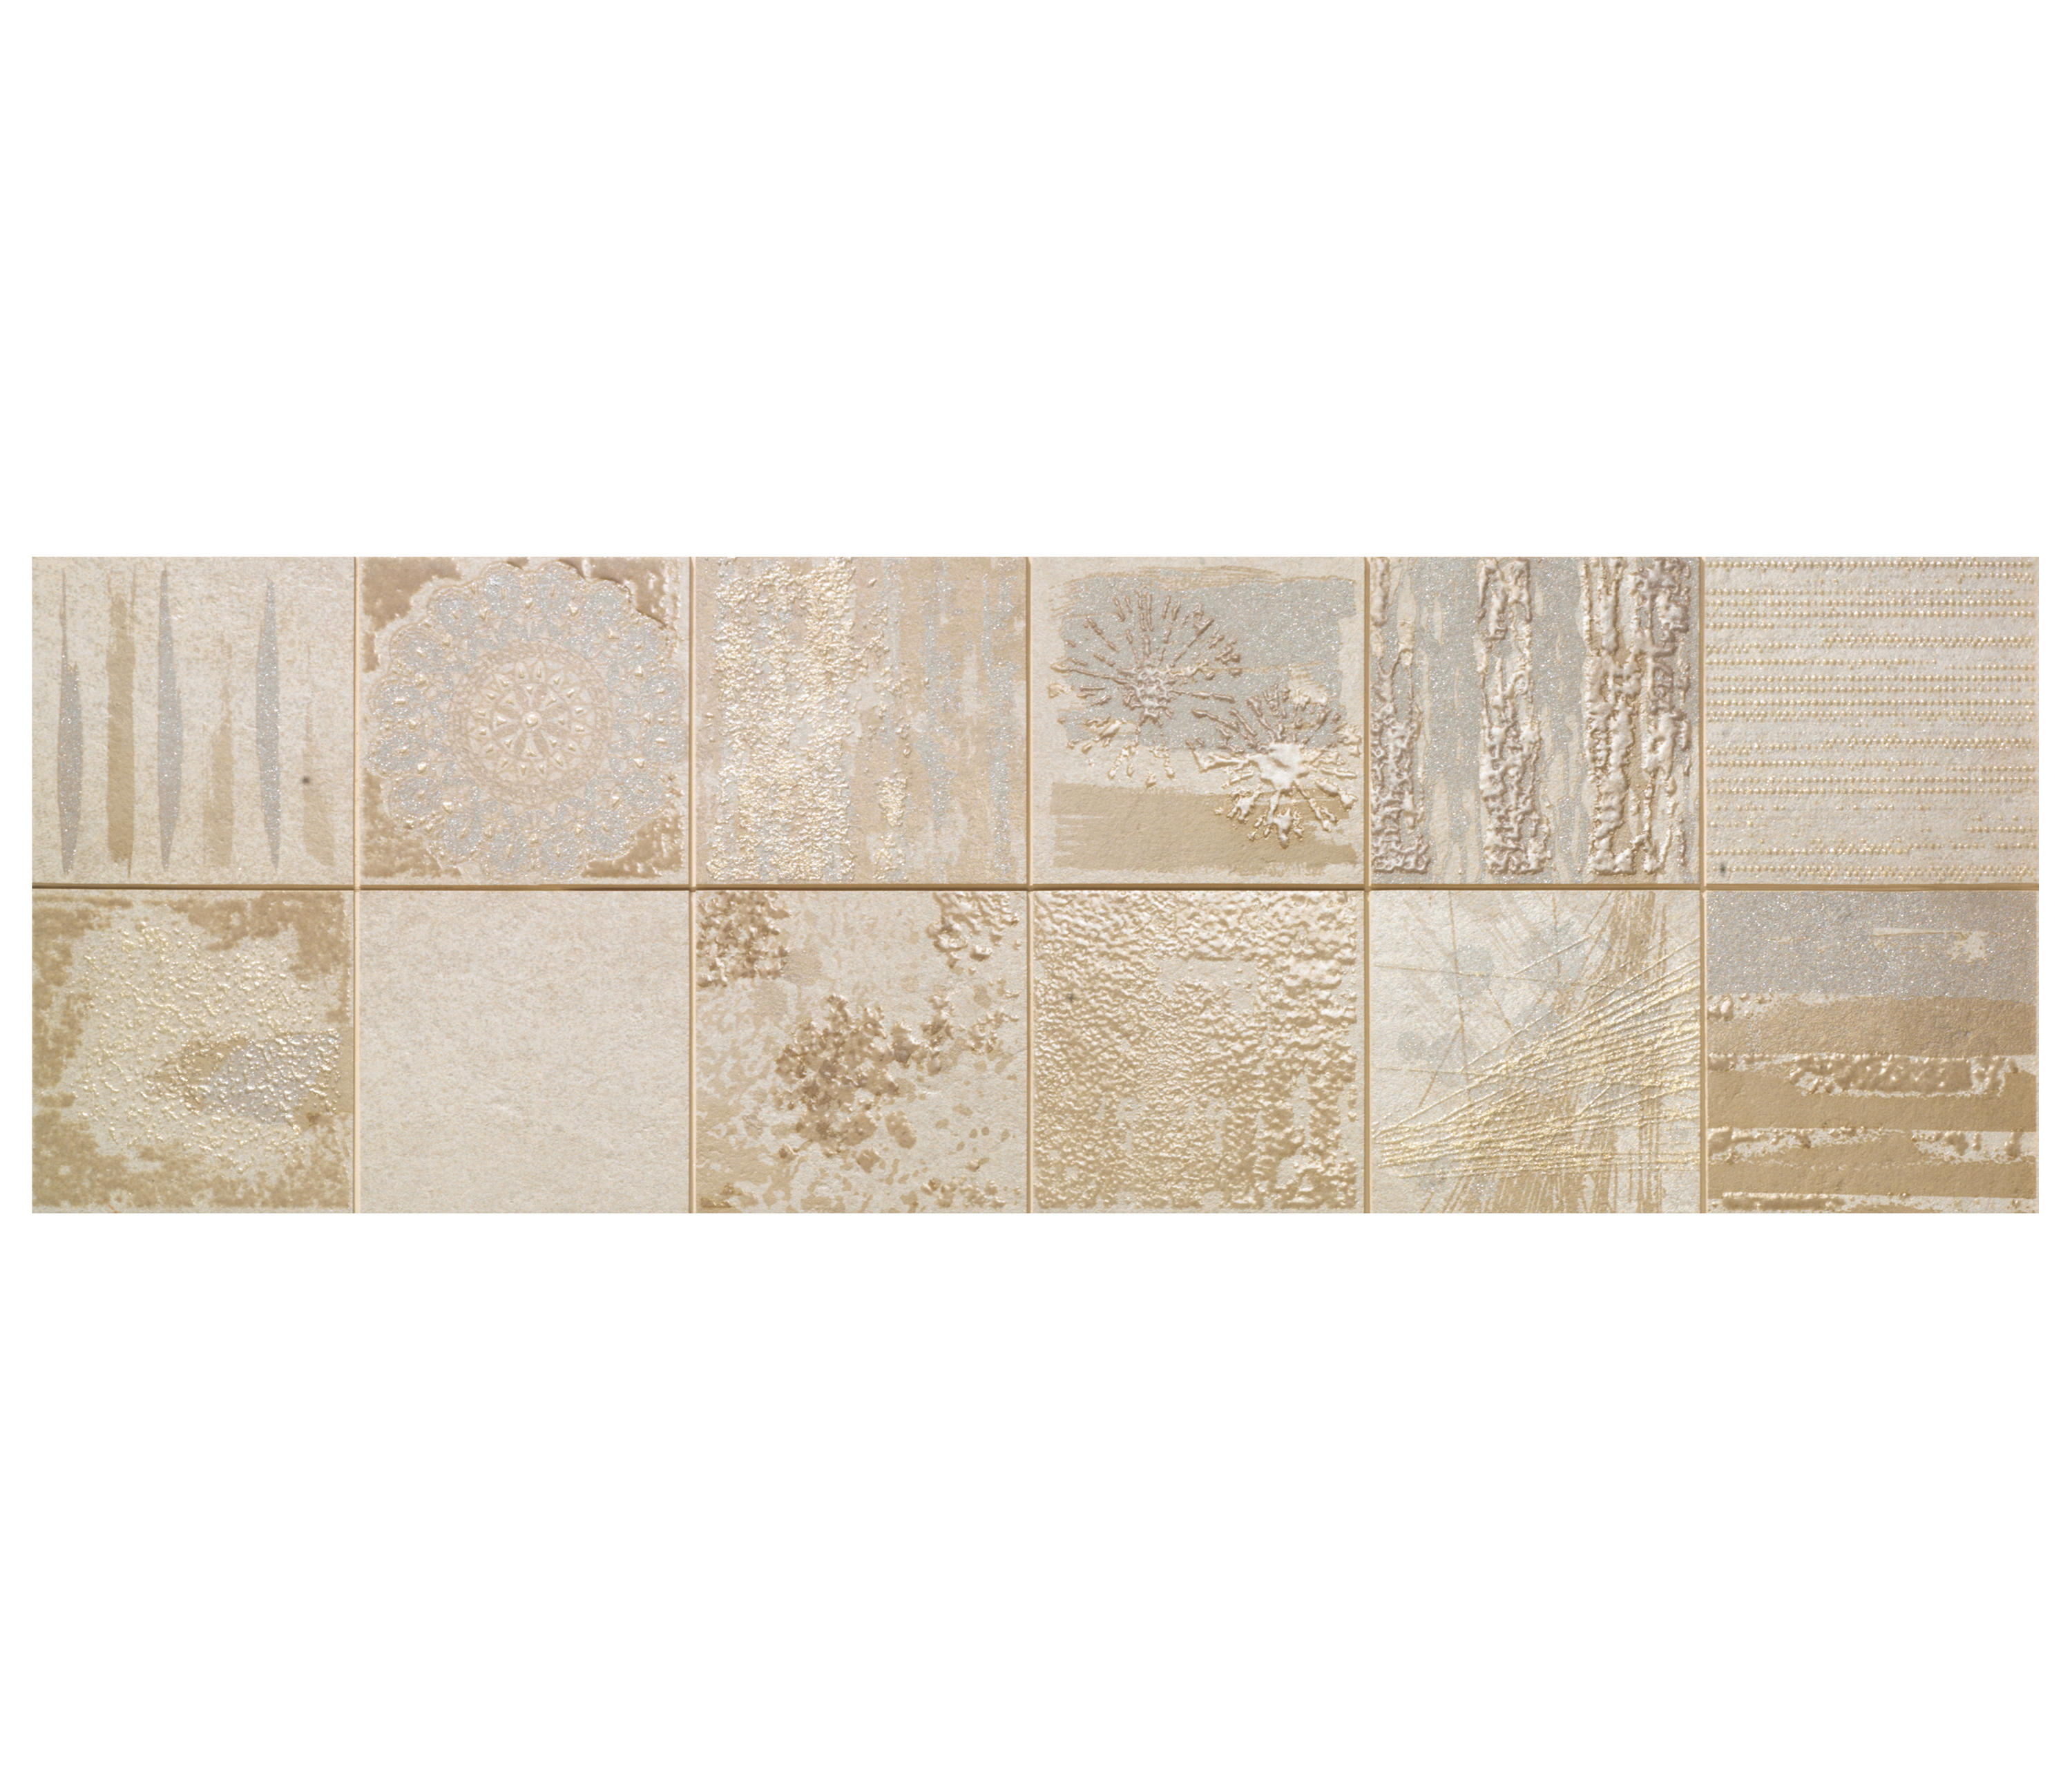 Hipster collage mist ceramic tiles from dune cermica architonic hipster collage mist by dune cermica ceramic tiles dailygadgetfo Choice Image